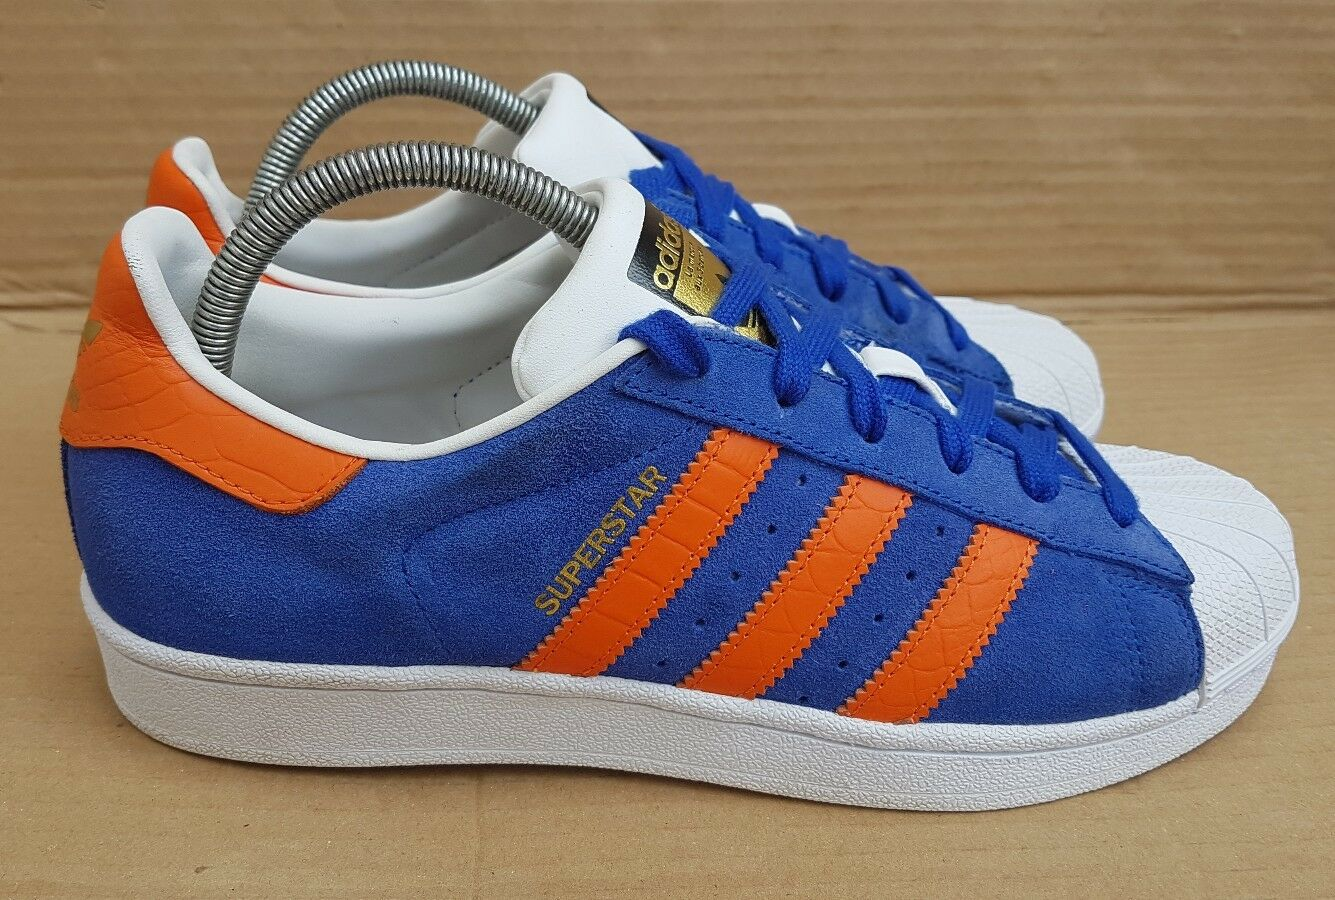 ADIDAS SUPERSTAR EAST RIVER RIVALRY Blau SUEDE AND ORANGE TRAINERS IN SIZE 6 UK